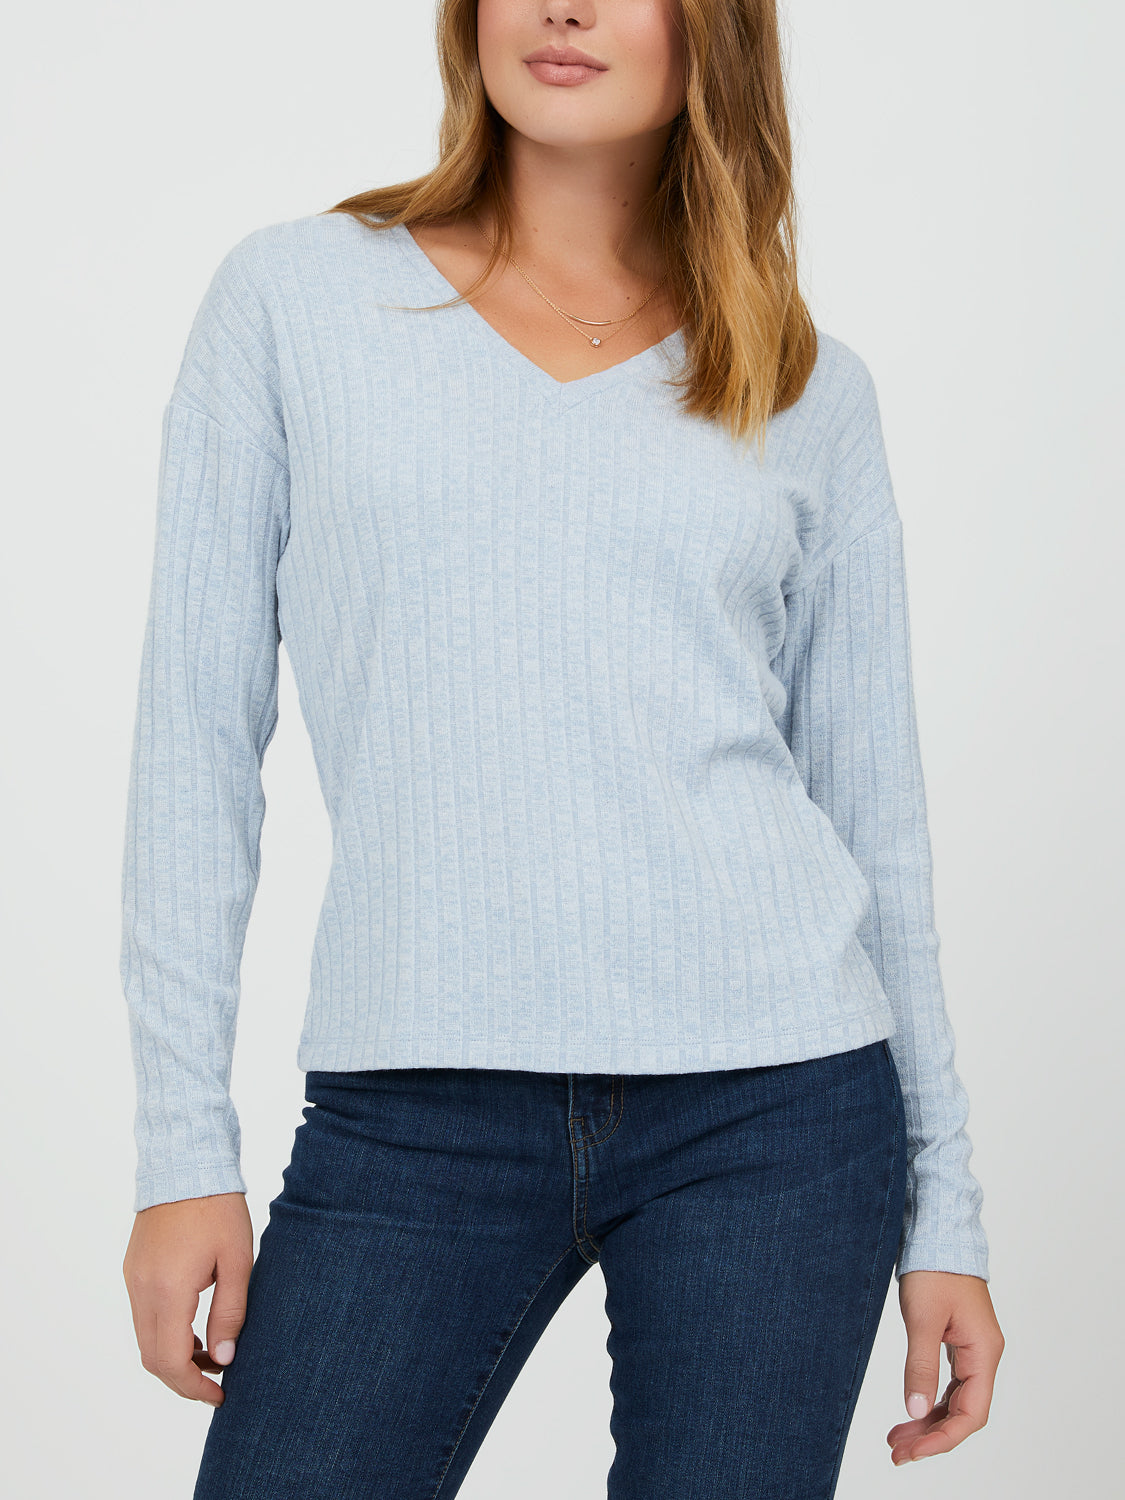 Rib Knit V-Neck Sweater Knit Top